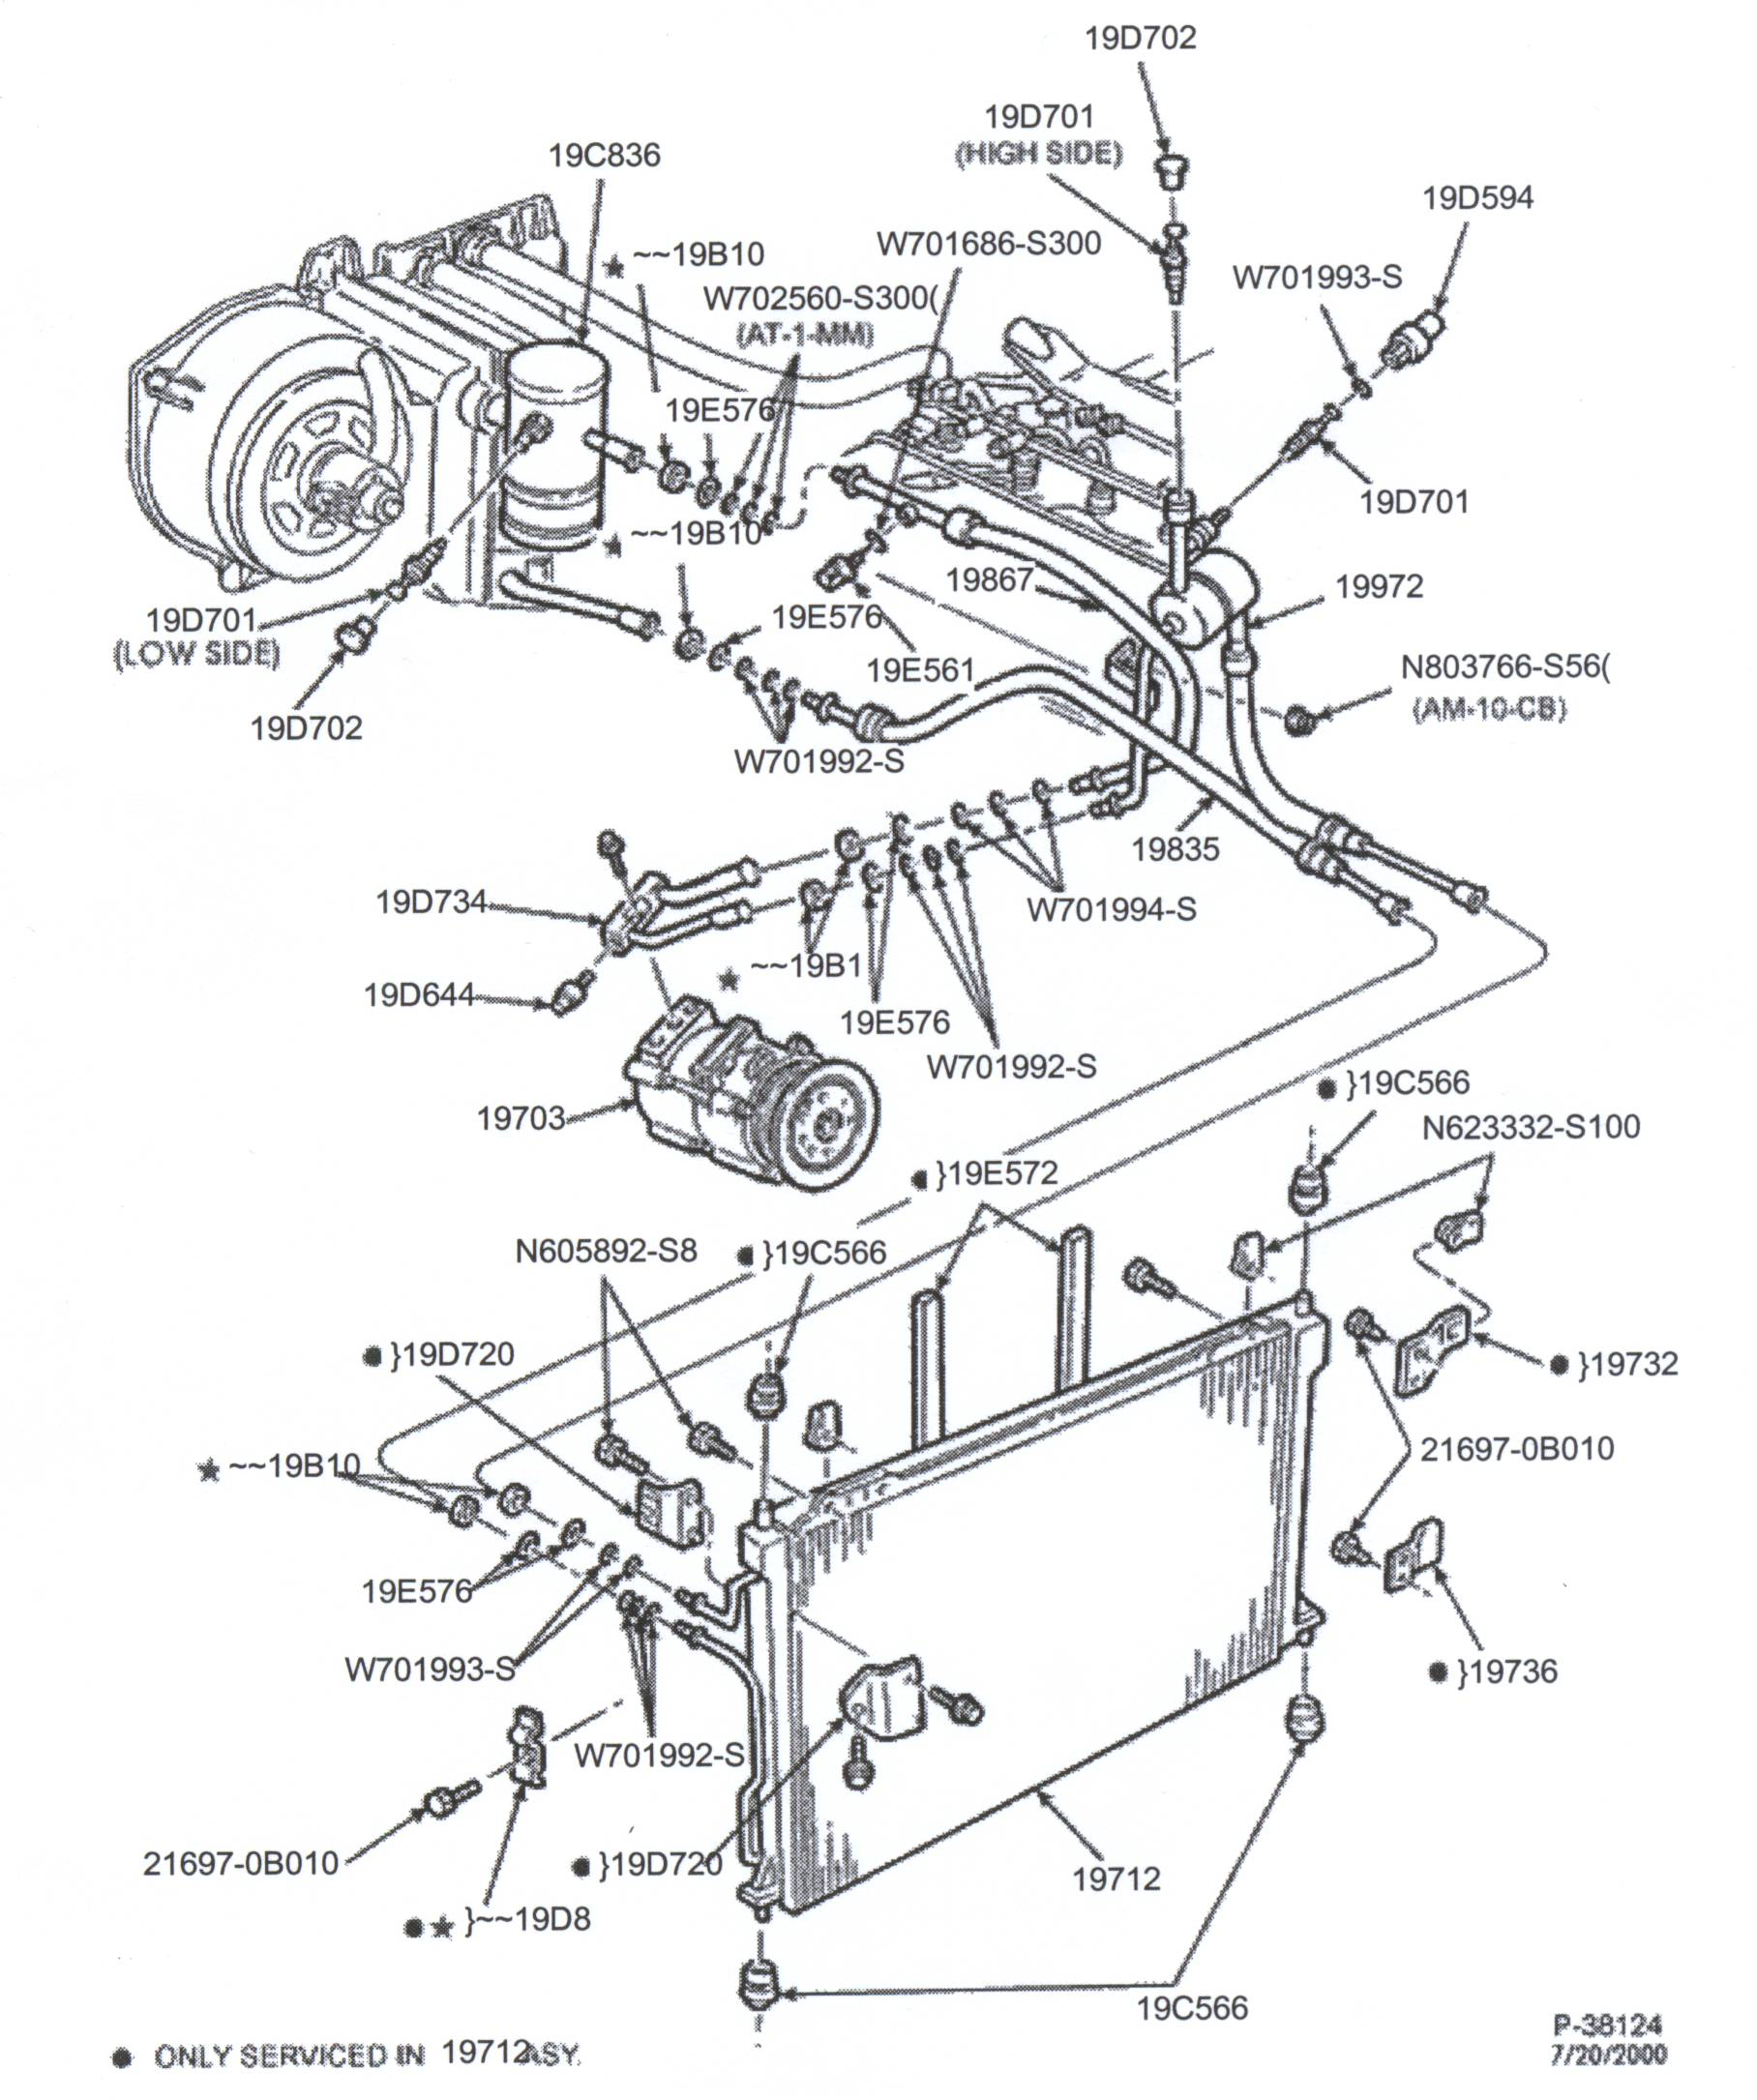 goulds well pump wiring diagram goulds discover your wiring presser foot wiring diagram goulds well pump